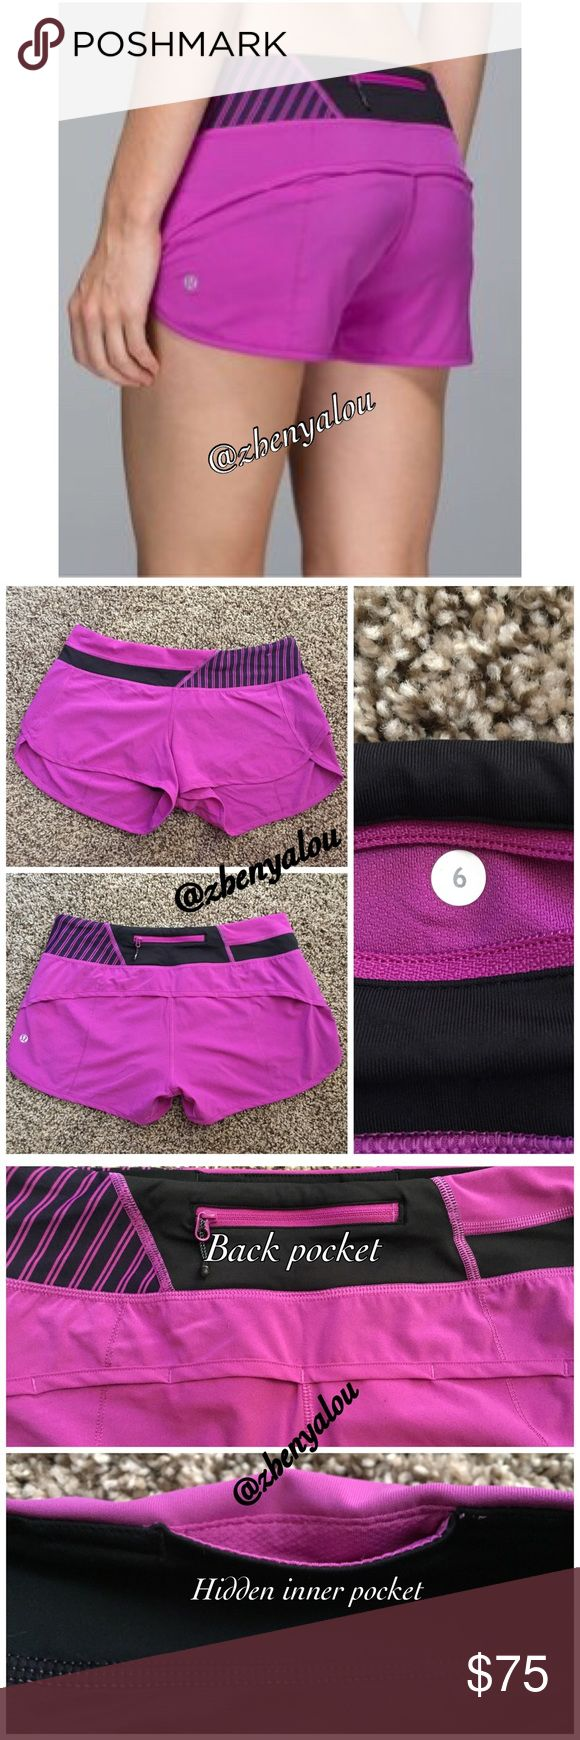 Lululemon 4 way speed shorts NWOT. Only tried on. No damage to shorts itself, but tag has some minor fraying. 4-way.   👉 Please ask all questions before purchasing! Offers/negotiations through personal email or offer button ONLY!   👉No unnecessary comments about price is needed. Negative/rude comments WILL BE BLOCKED.  🚫NO trades 🚫NO lowballing 🚫NO returns   👉 Can post on Ⓜ️ if I have a serious buyer. lululemon athletica Shorts